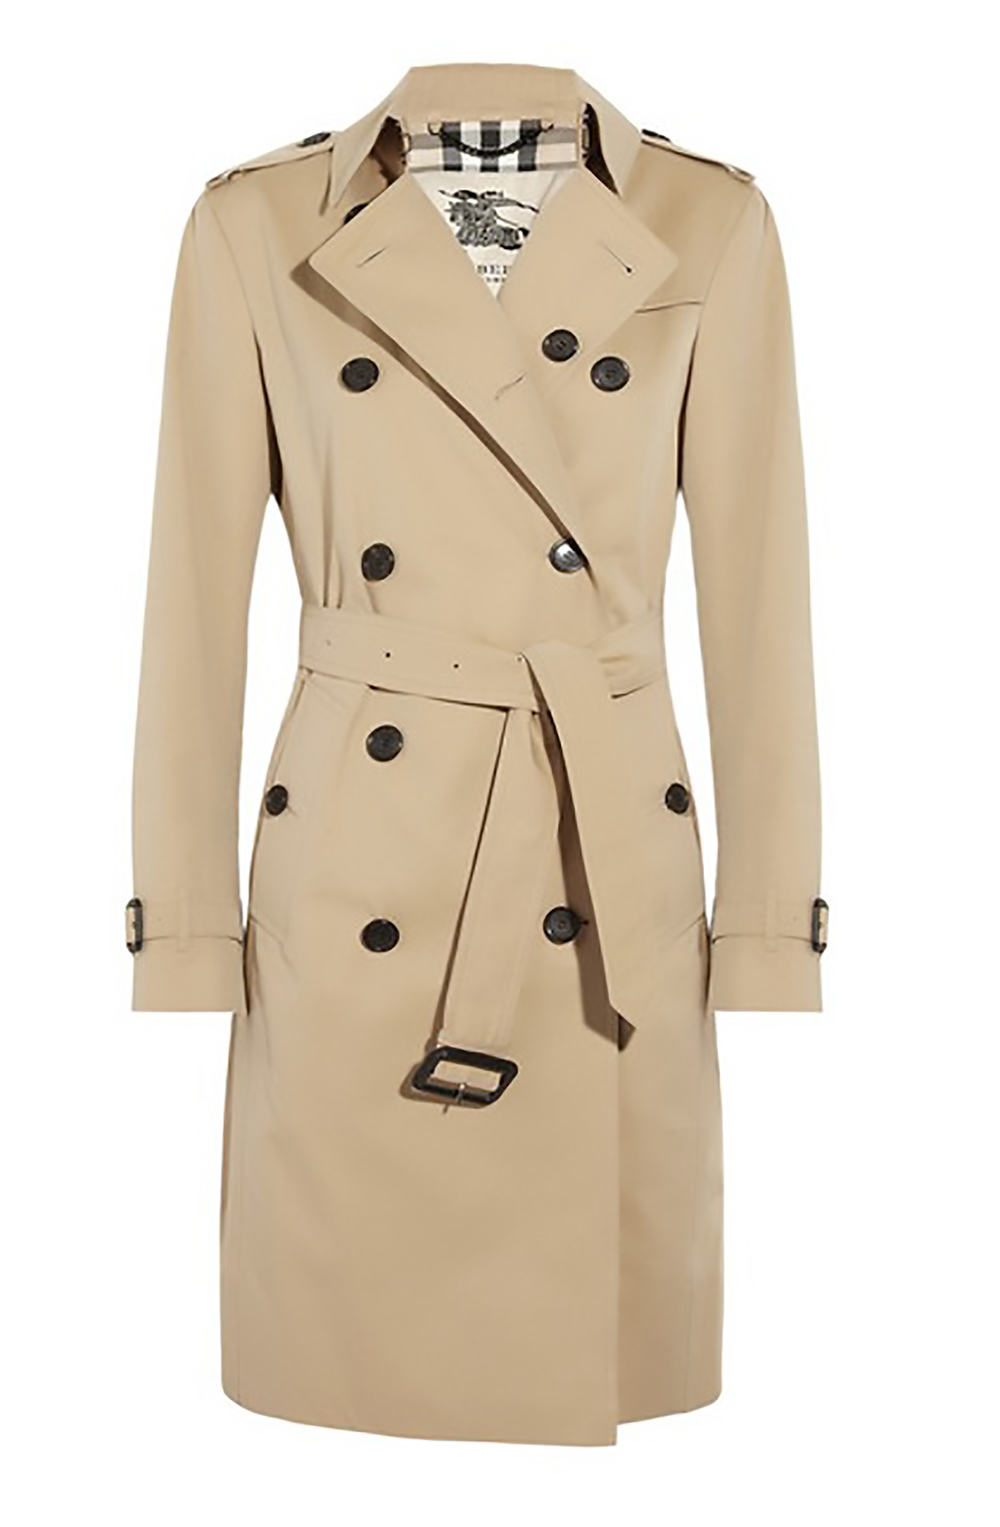 net a porter burberry london cotton twill trench coat April Showers 1500.jpg